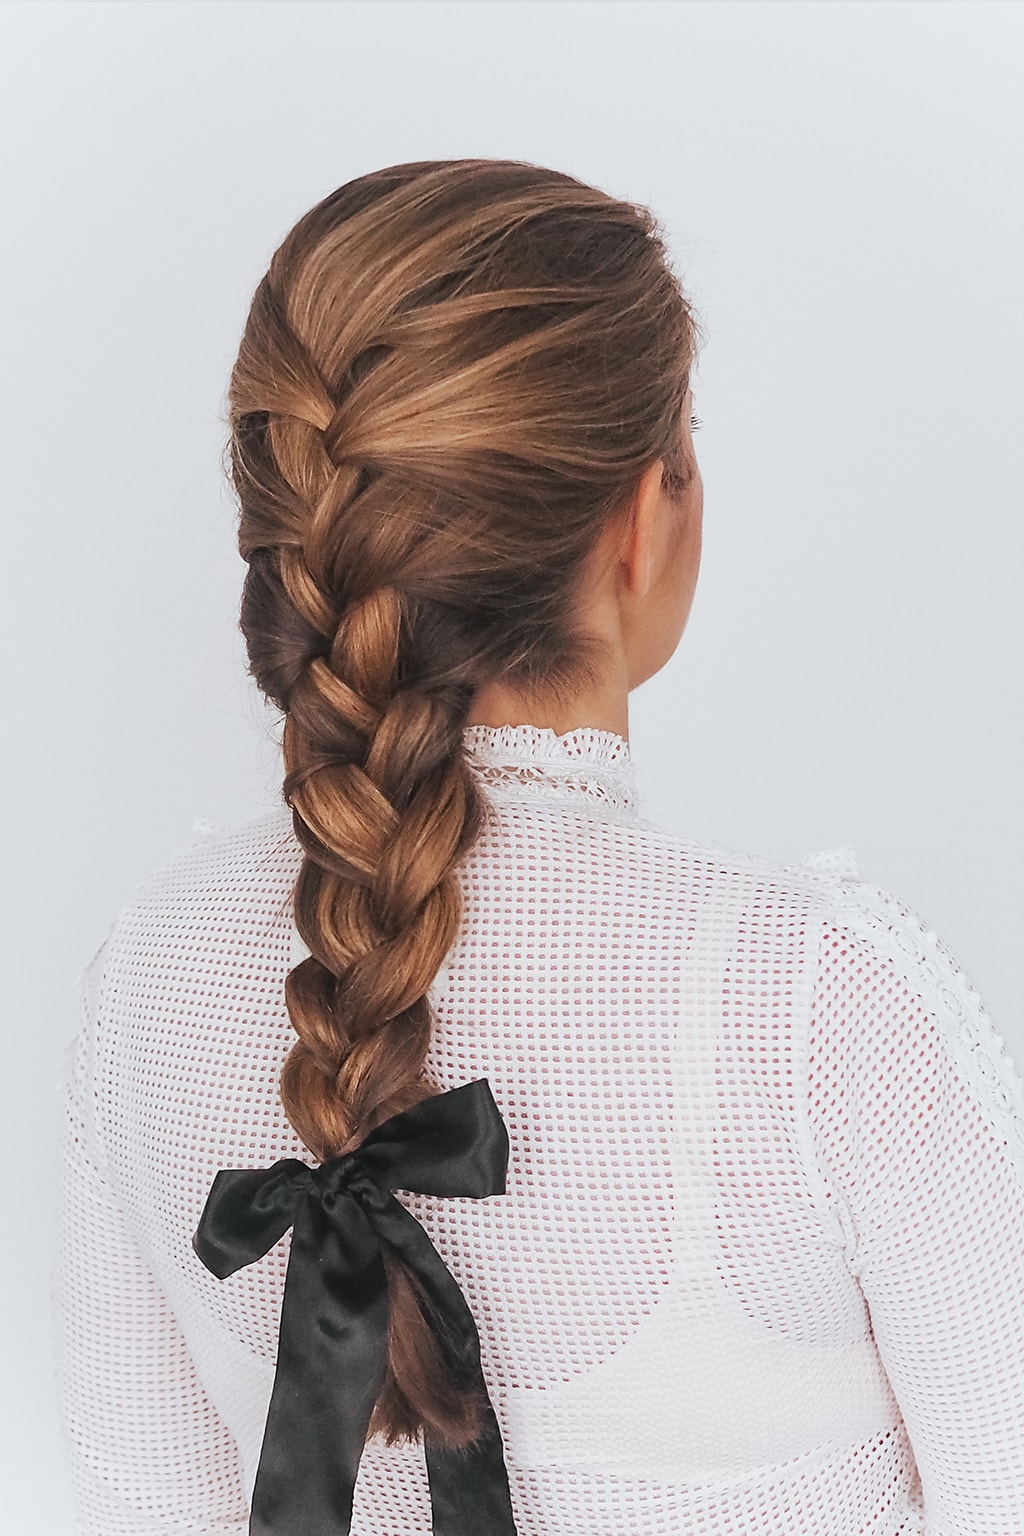 1. Valentinstagsfrisur: Romantic French Braid